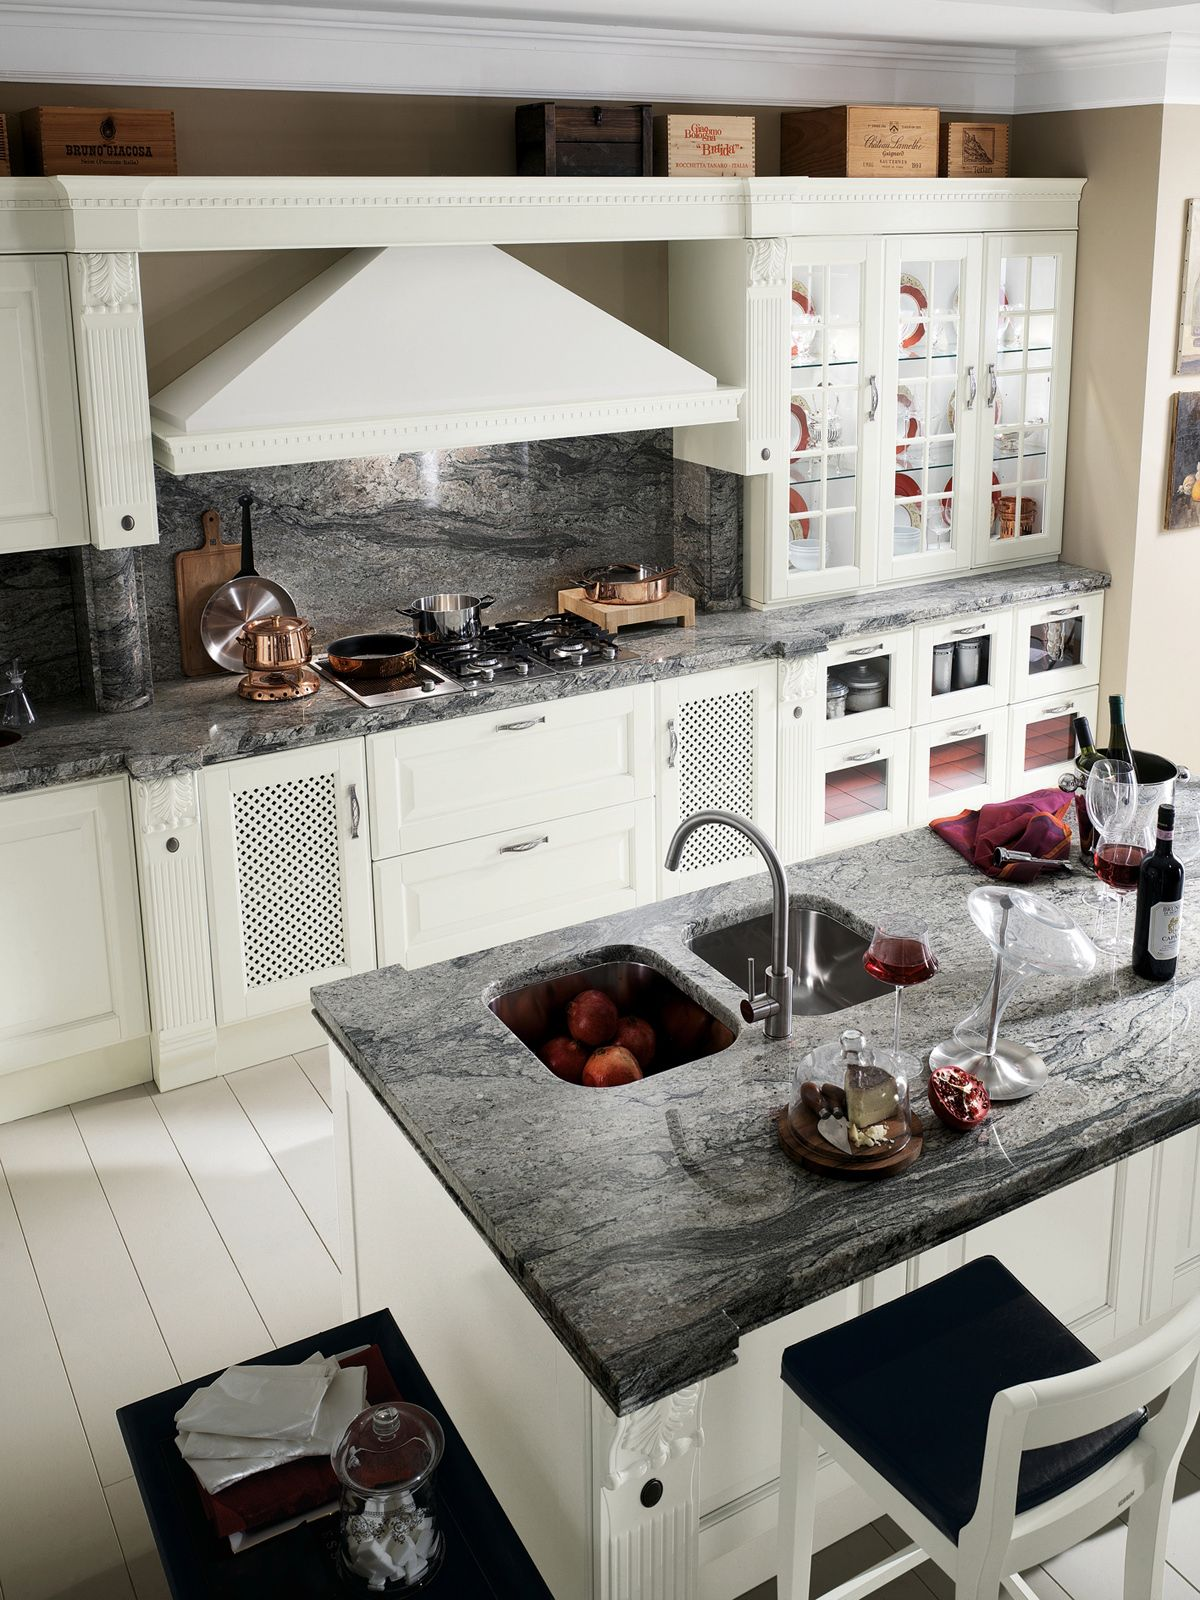 Stiles, Piano and Cucina on Pinterest